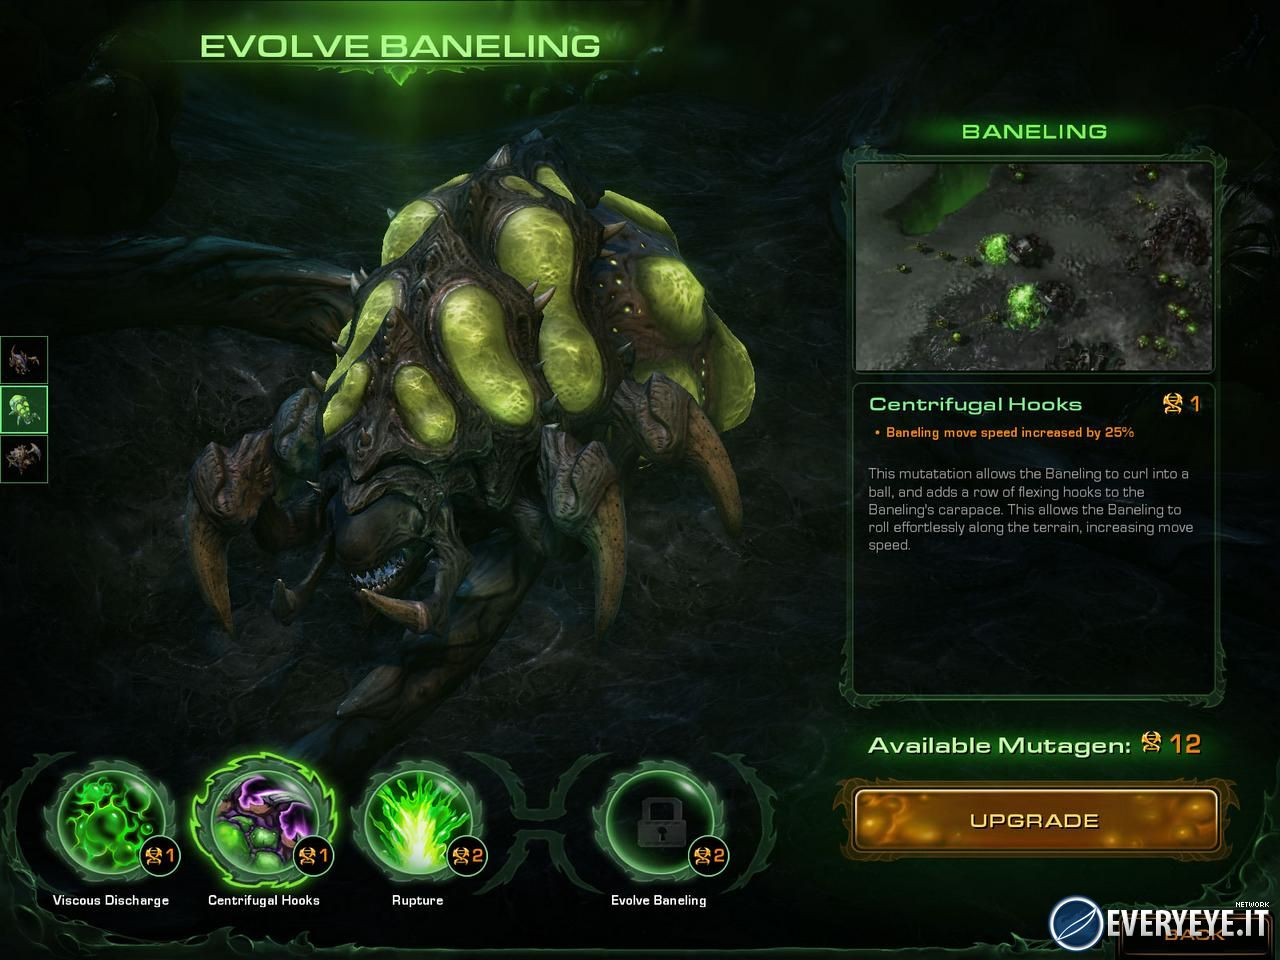 heart of the swarm matchmaking Heart of the swarm - starcraft ii - legacy of the void: release date march 12 heart of the swarm will bring in unranked matchmaking as well.